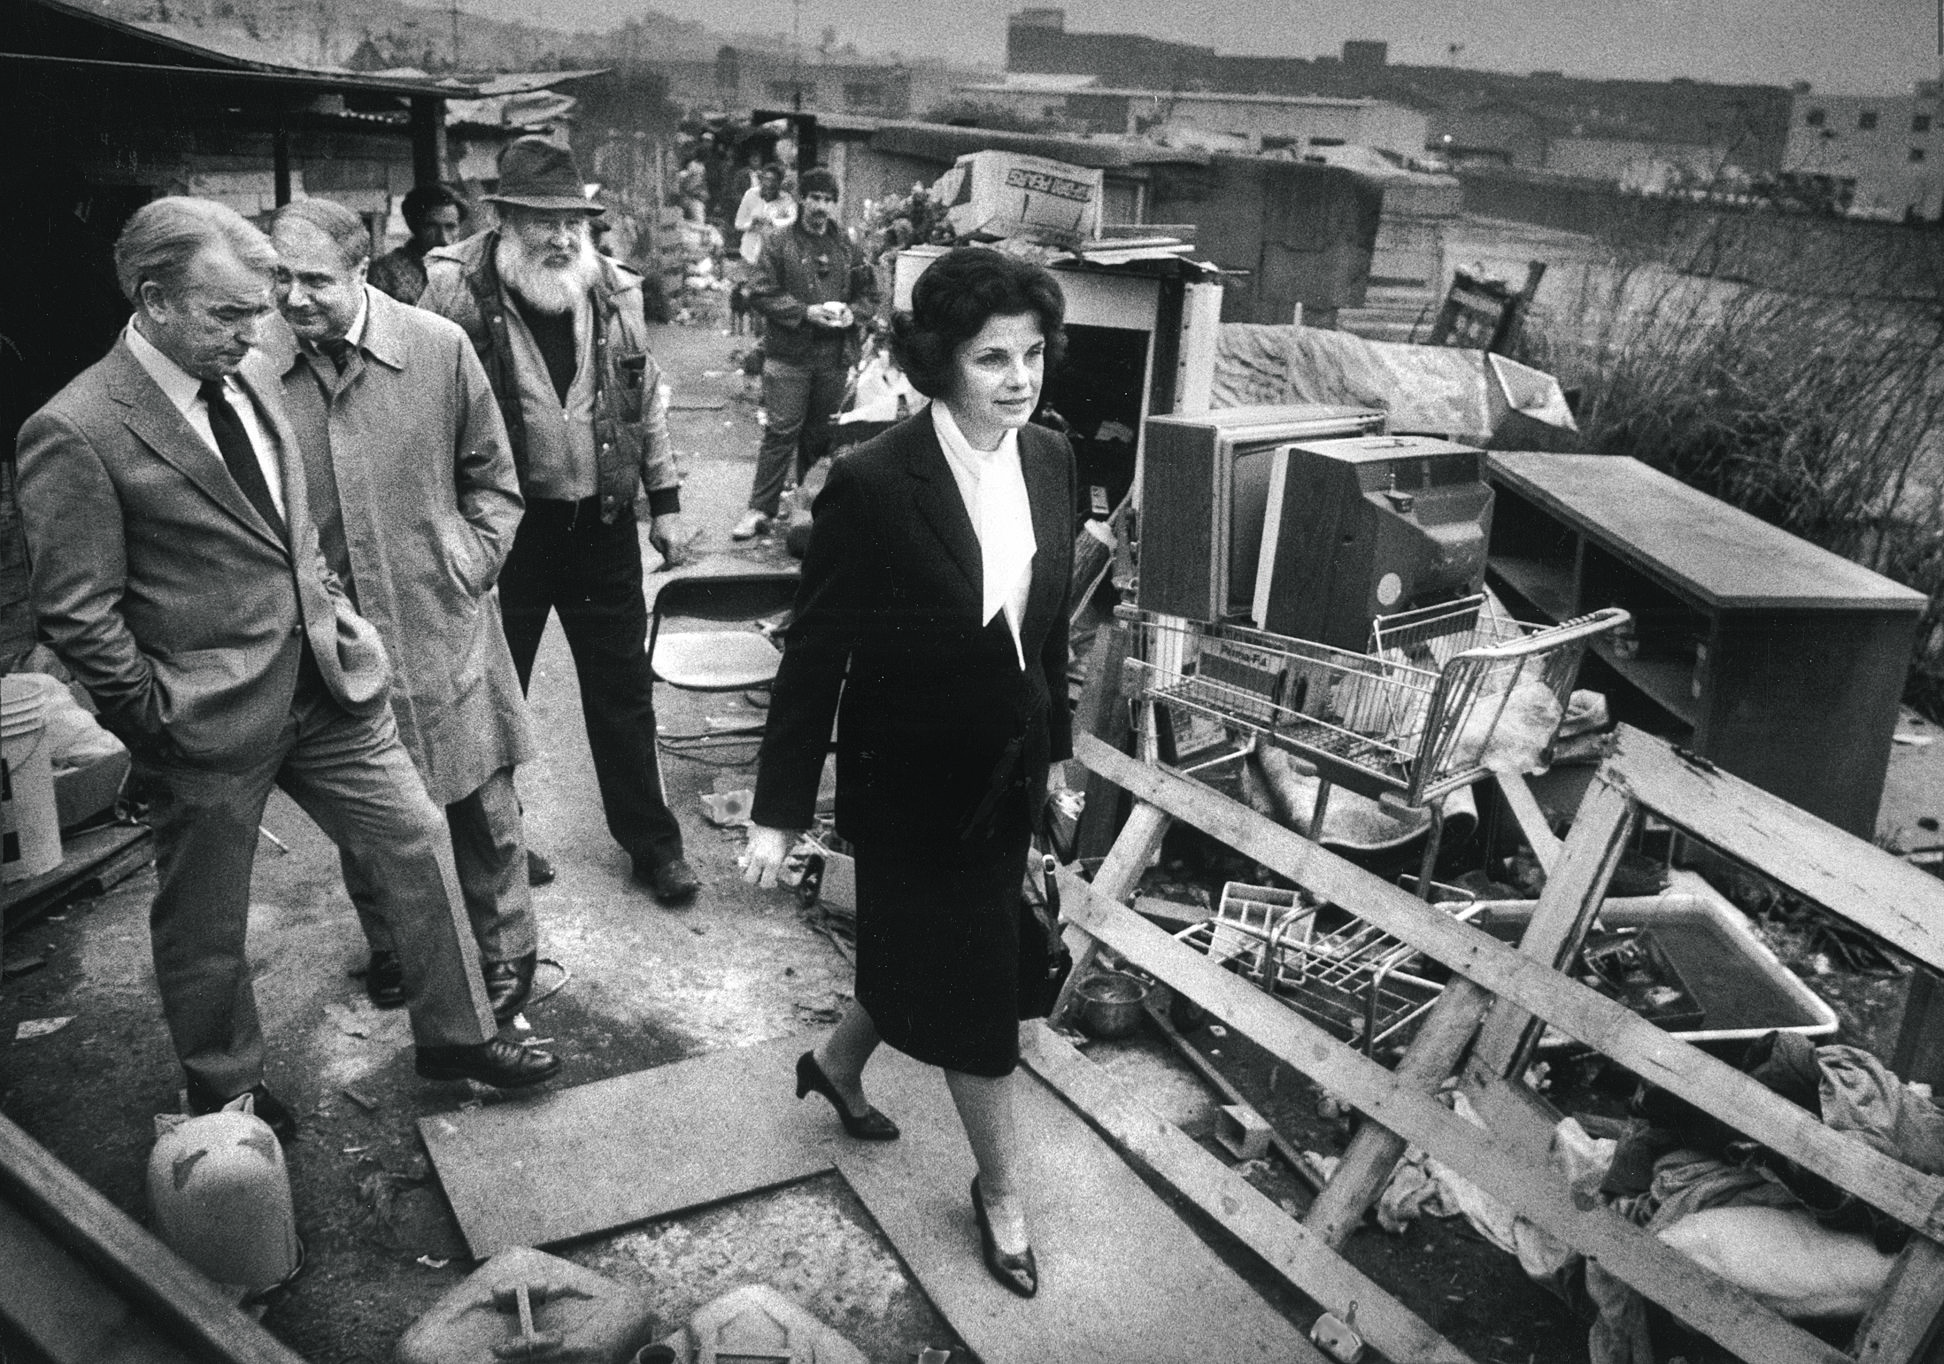 Mayor Dianne Feinstein and members of her administration walk through a shantytown slated for dismantling near Seventh and Berry streets.